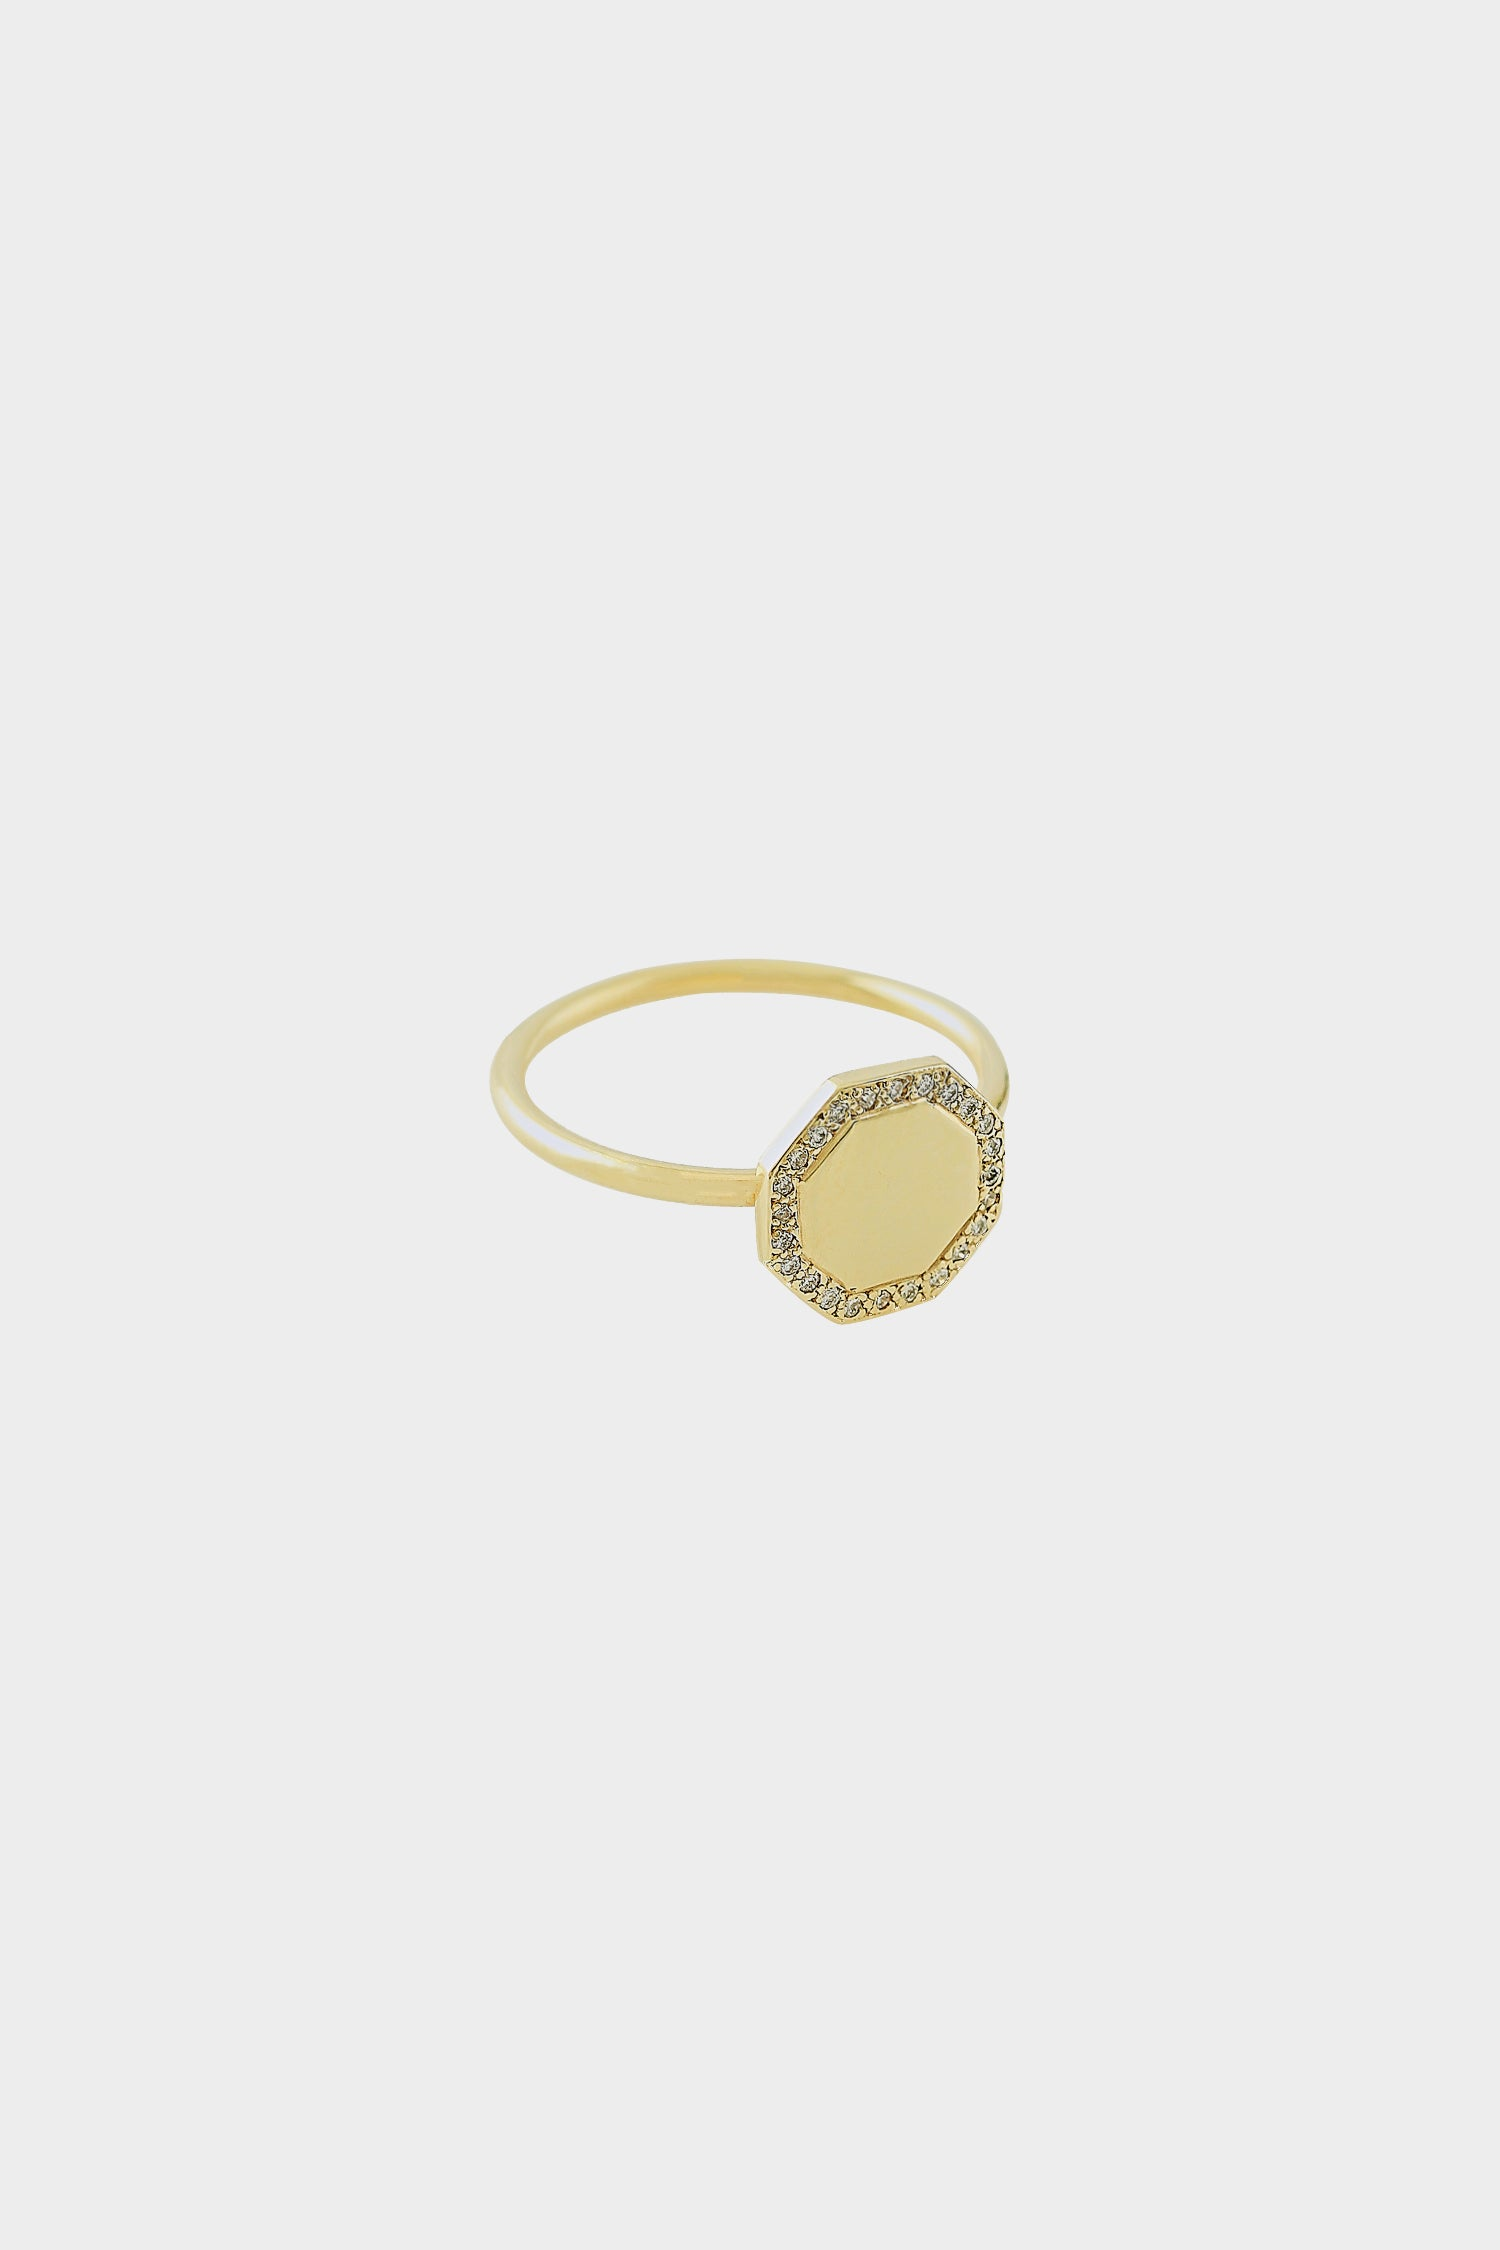 Octagon Ring with Diamonds | 14K Yellow Gold